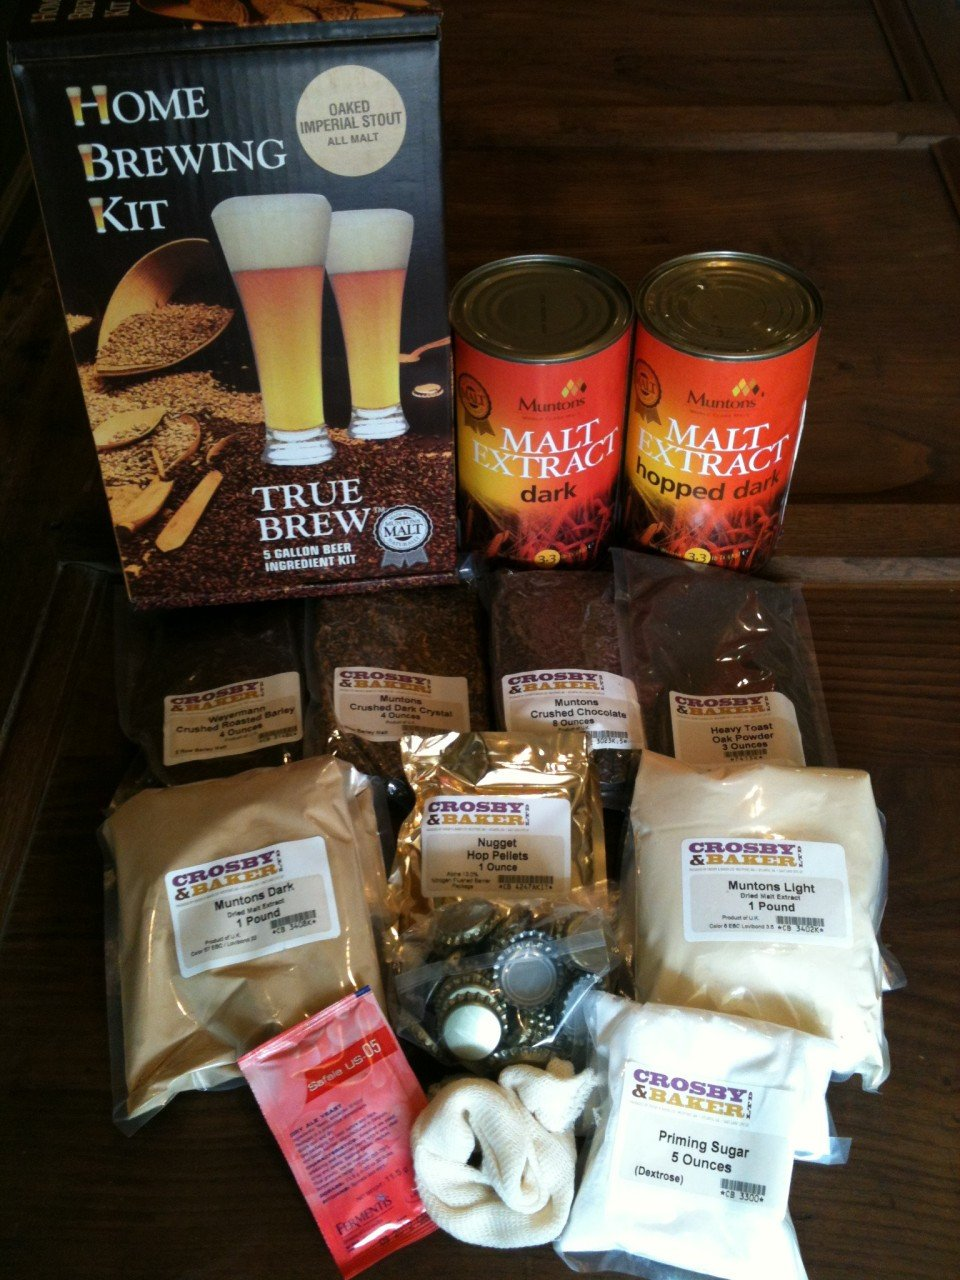 Oaked Imperial Stout Beer Ingredient Kit